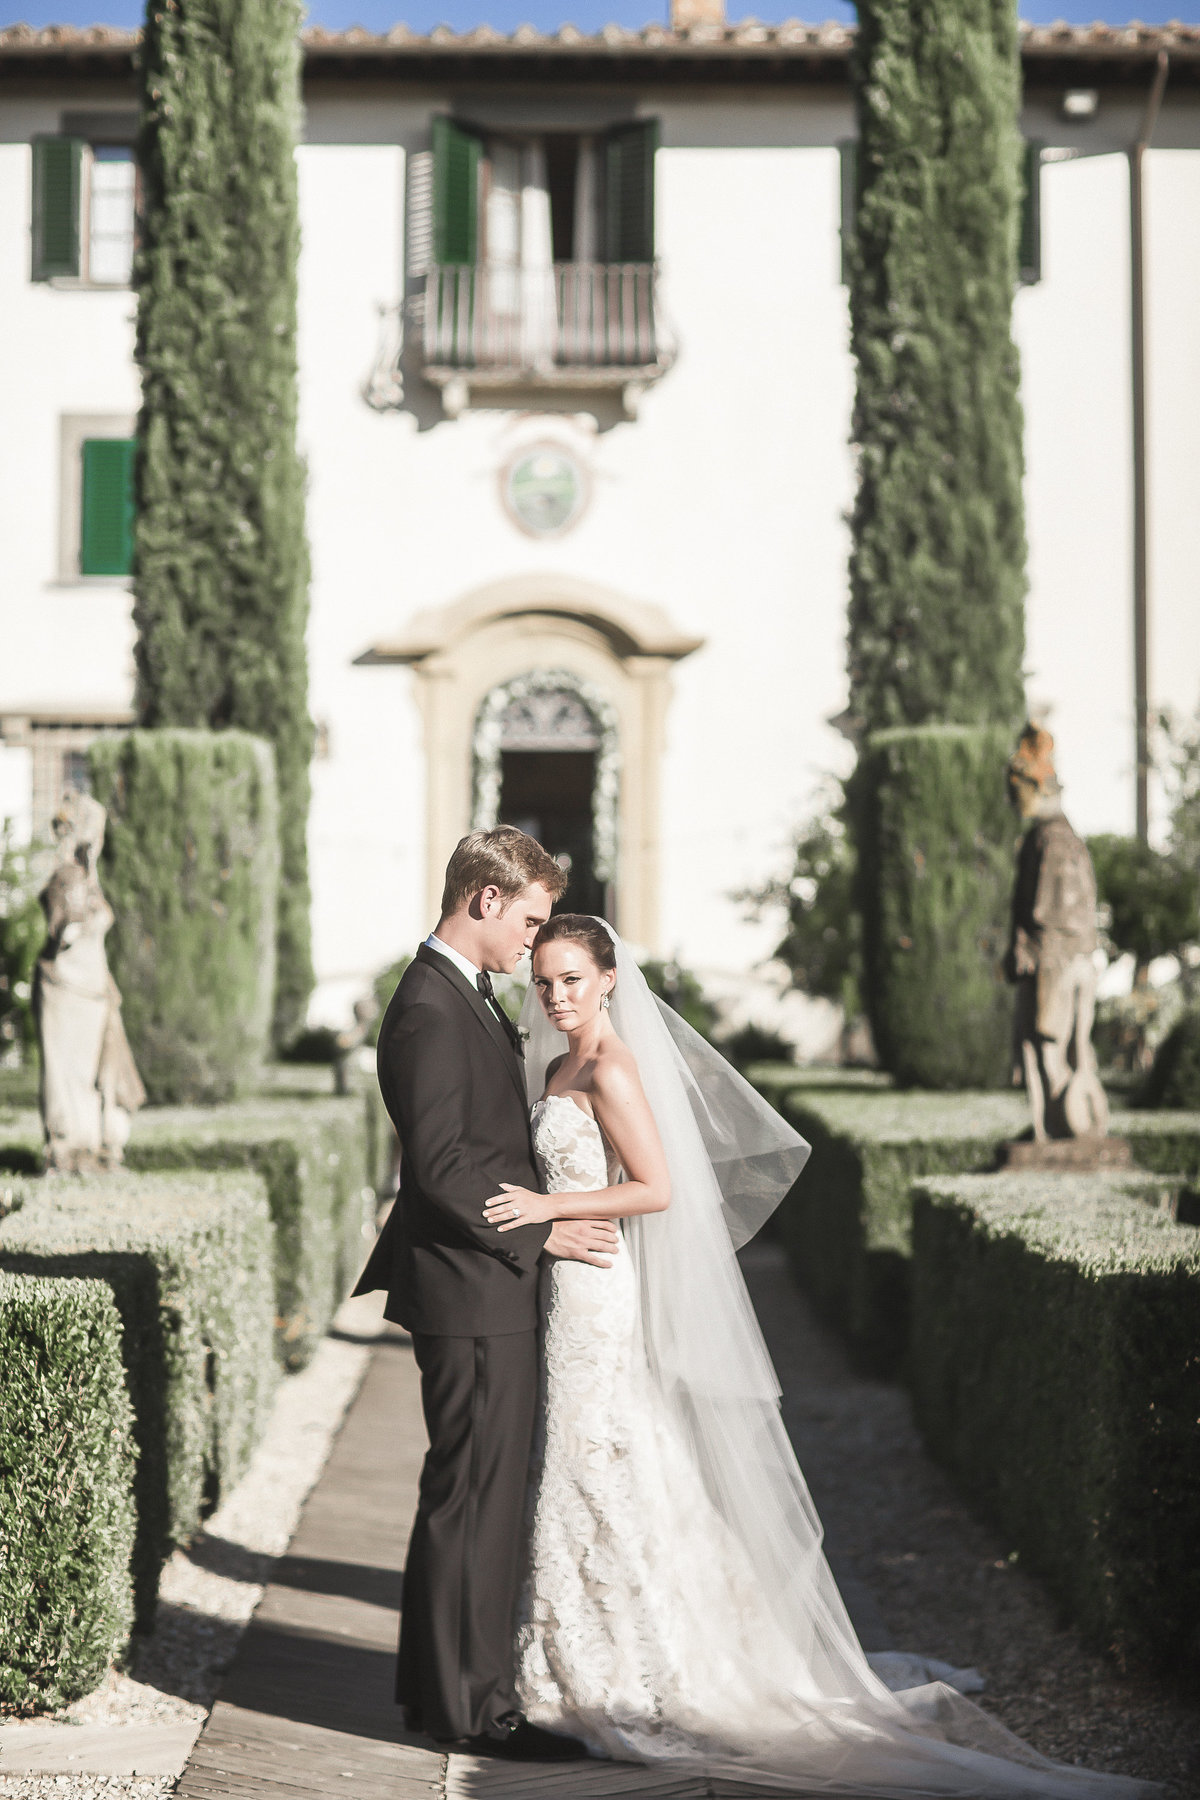 Luxury-Italy-Wedding-Photographer-Destination-Florence-036520